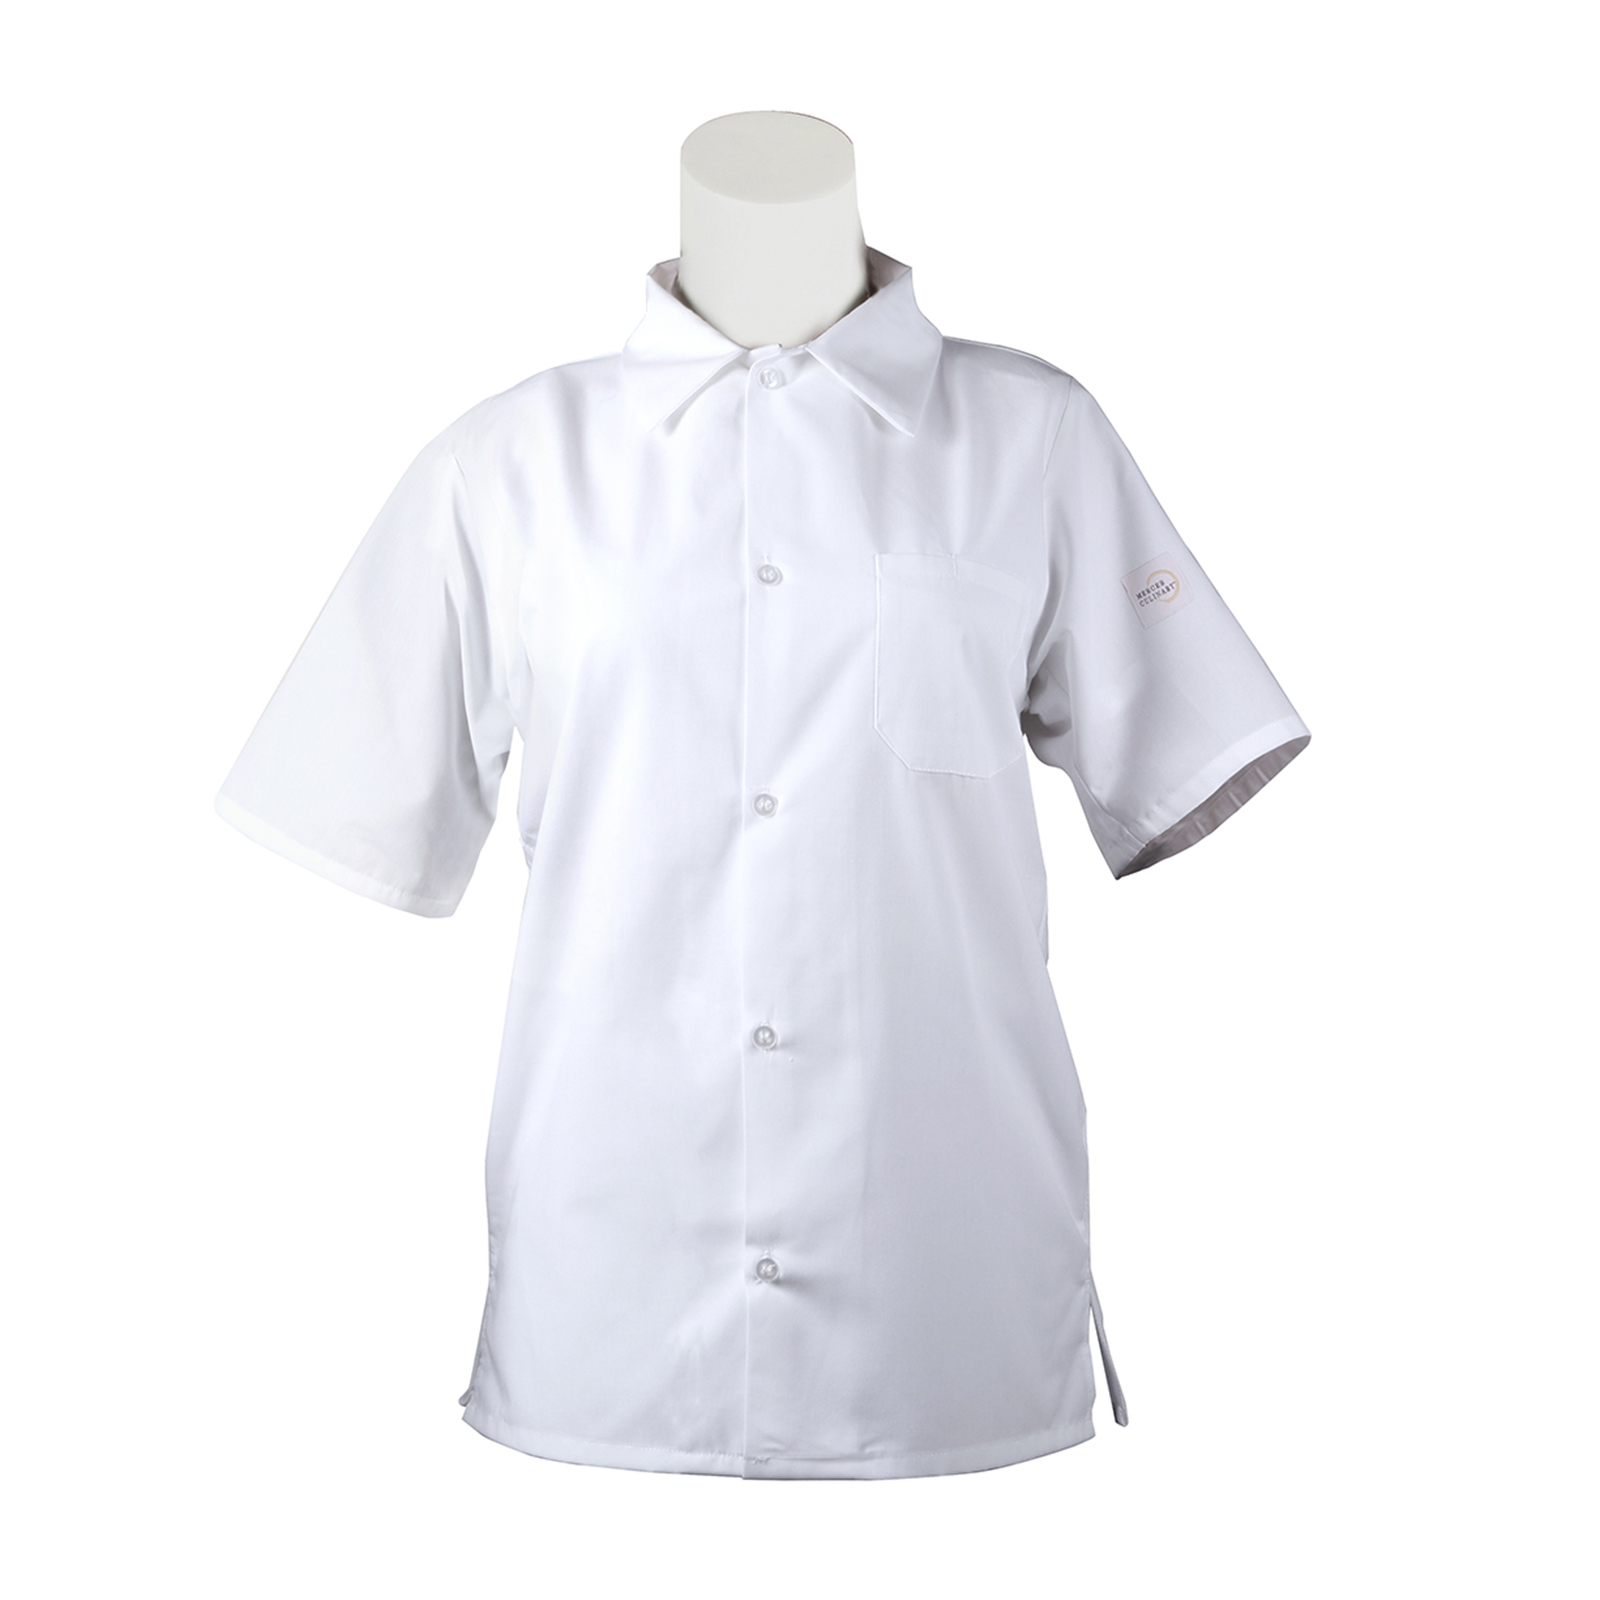 Mercer Culinary M60200WHM cook's shirt